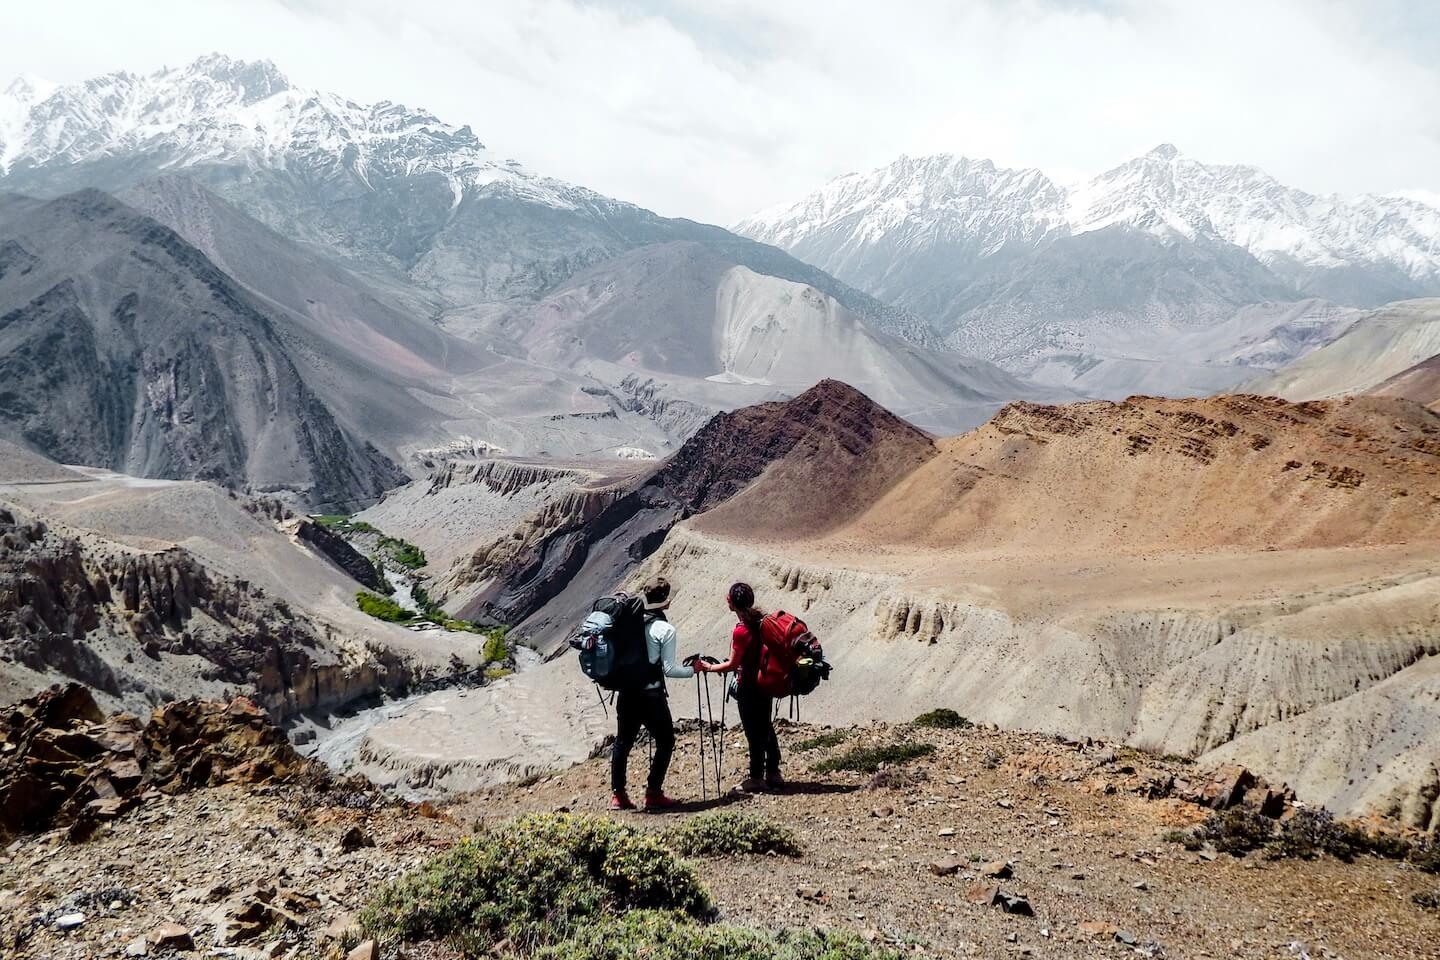 Best Hikes in the World - Long Distance Trekking   Moon & Honey Travel - the hiking blog for travelers